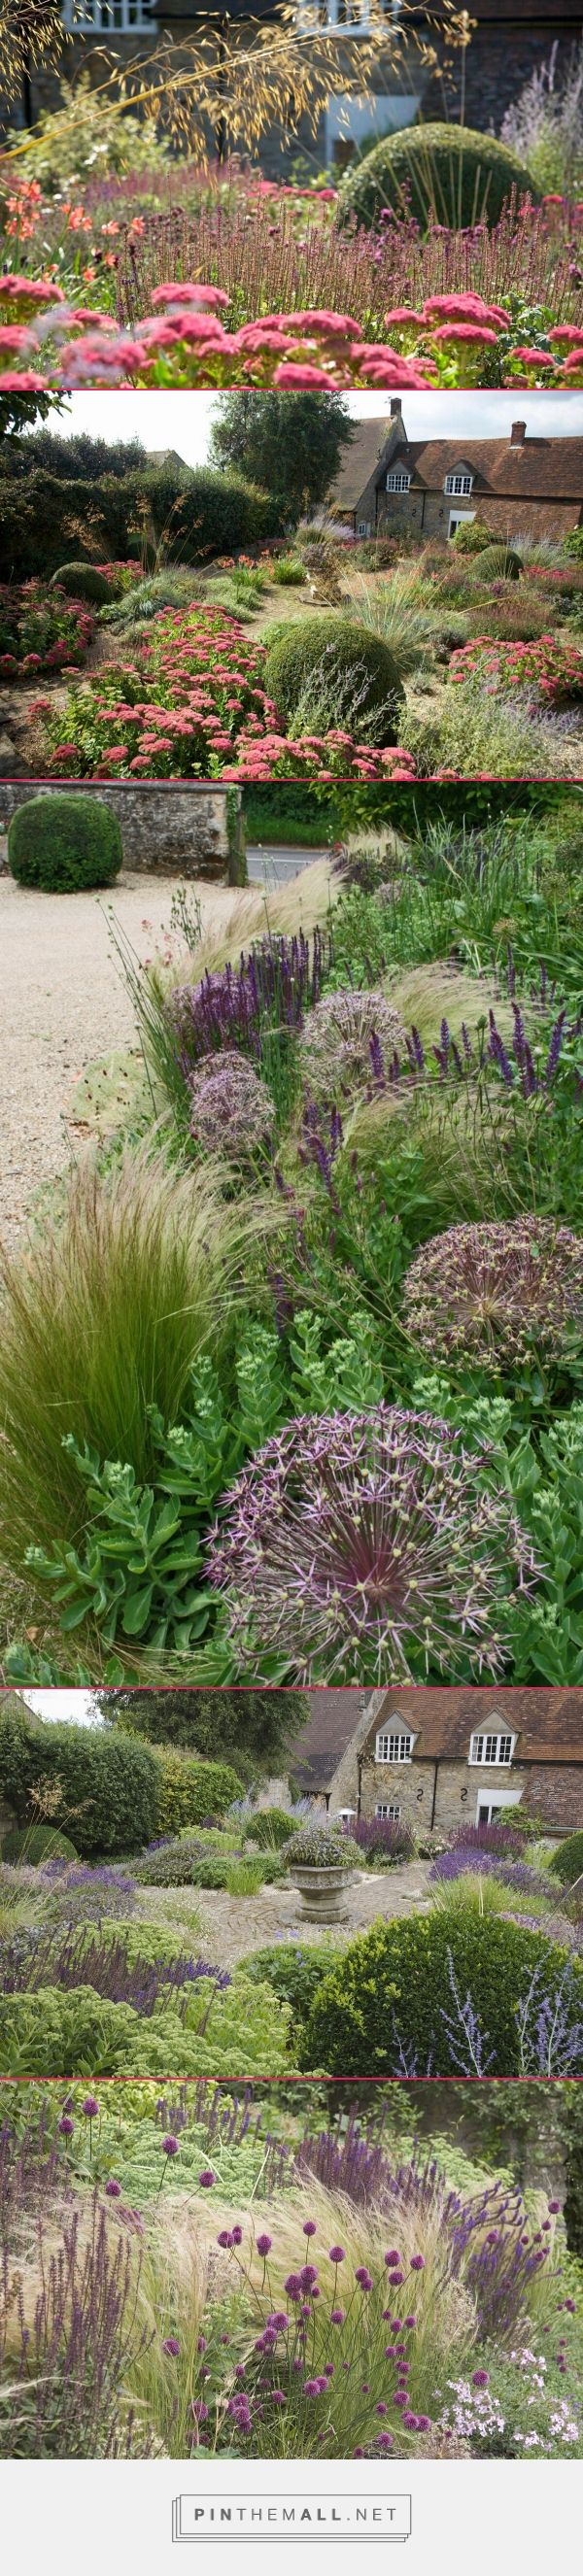 Sarah Price Landscapes   » Garsington Oxfordshire  http://sarahpricelandscapes.com/?page_id=56 - created via https://pinthemall.net